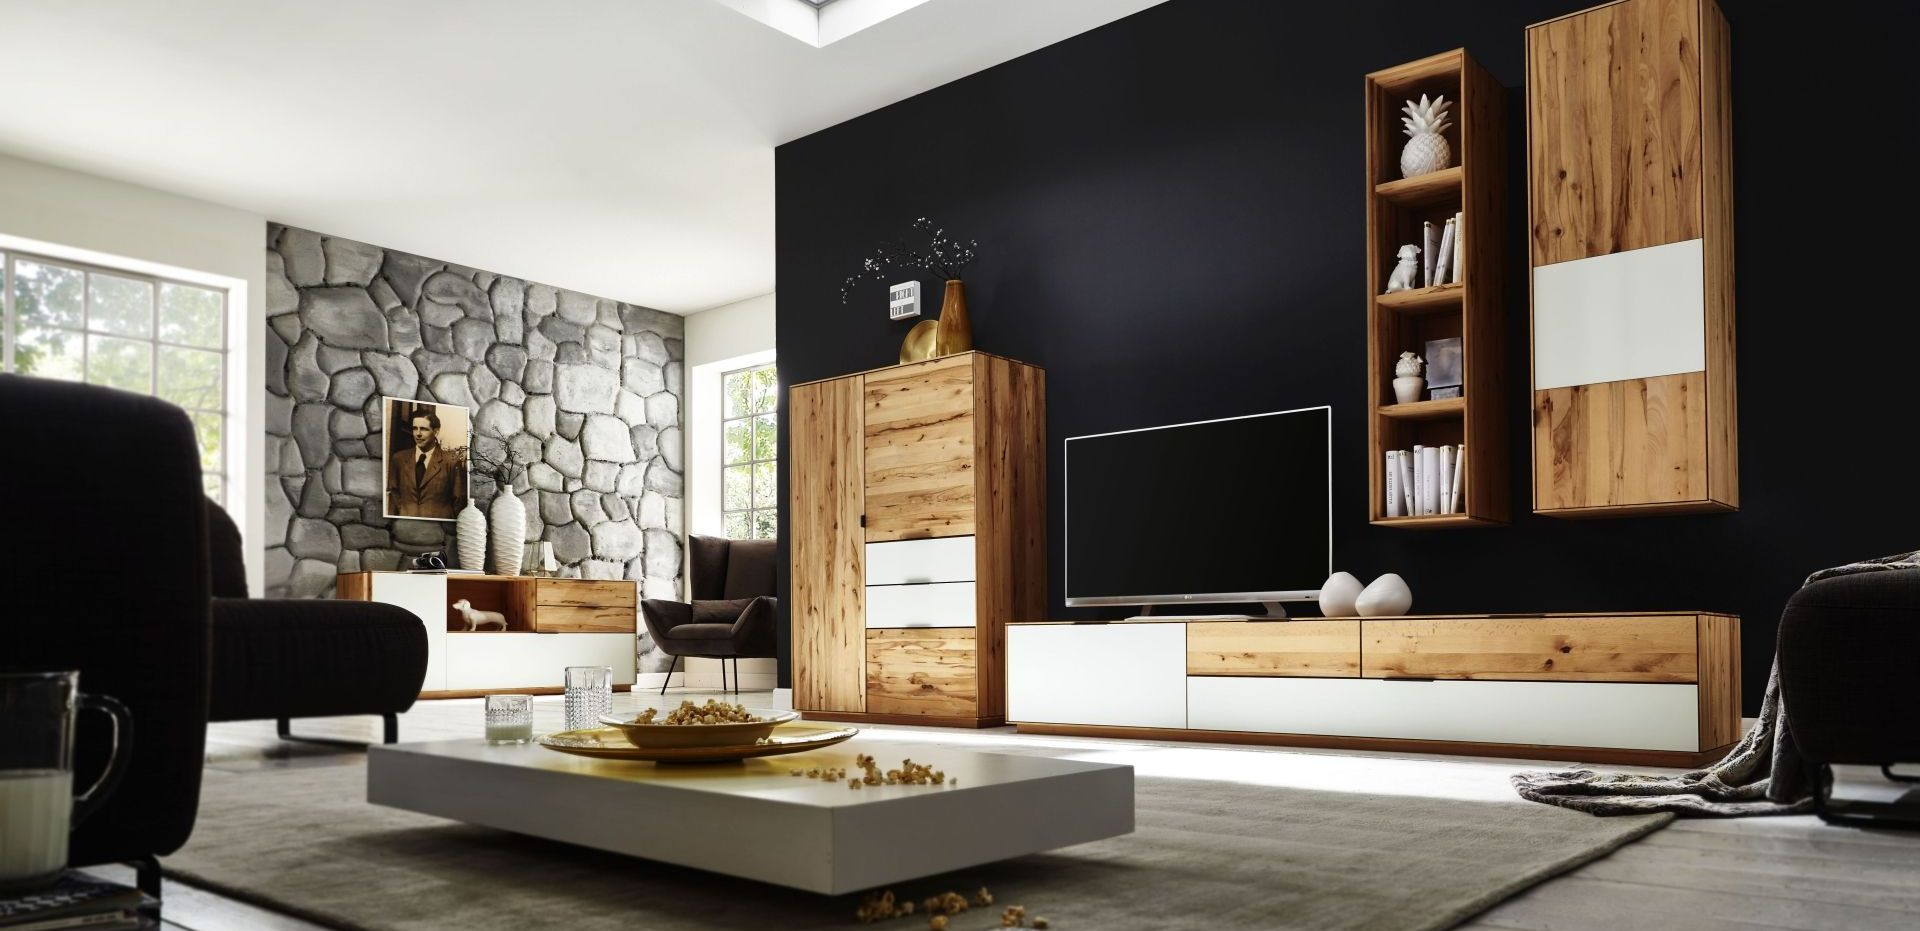 m bel k chenstudio matratzen zwickau m bel lenk. Black Bedroom Furniture Sets. Home Design Ideas